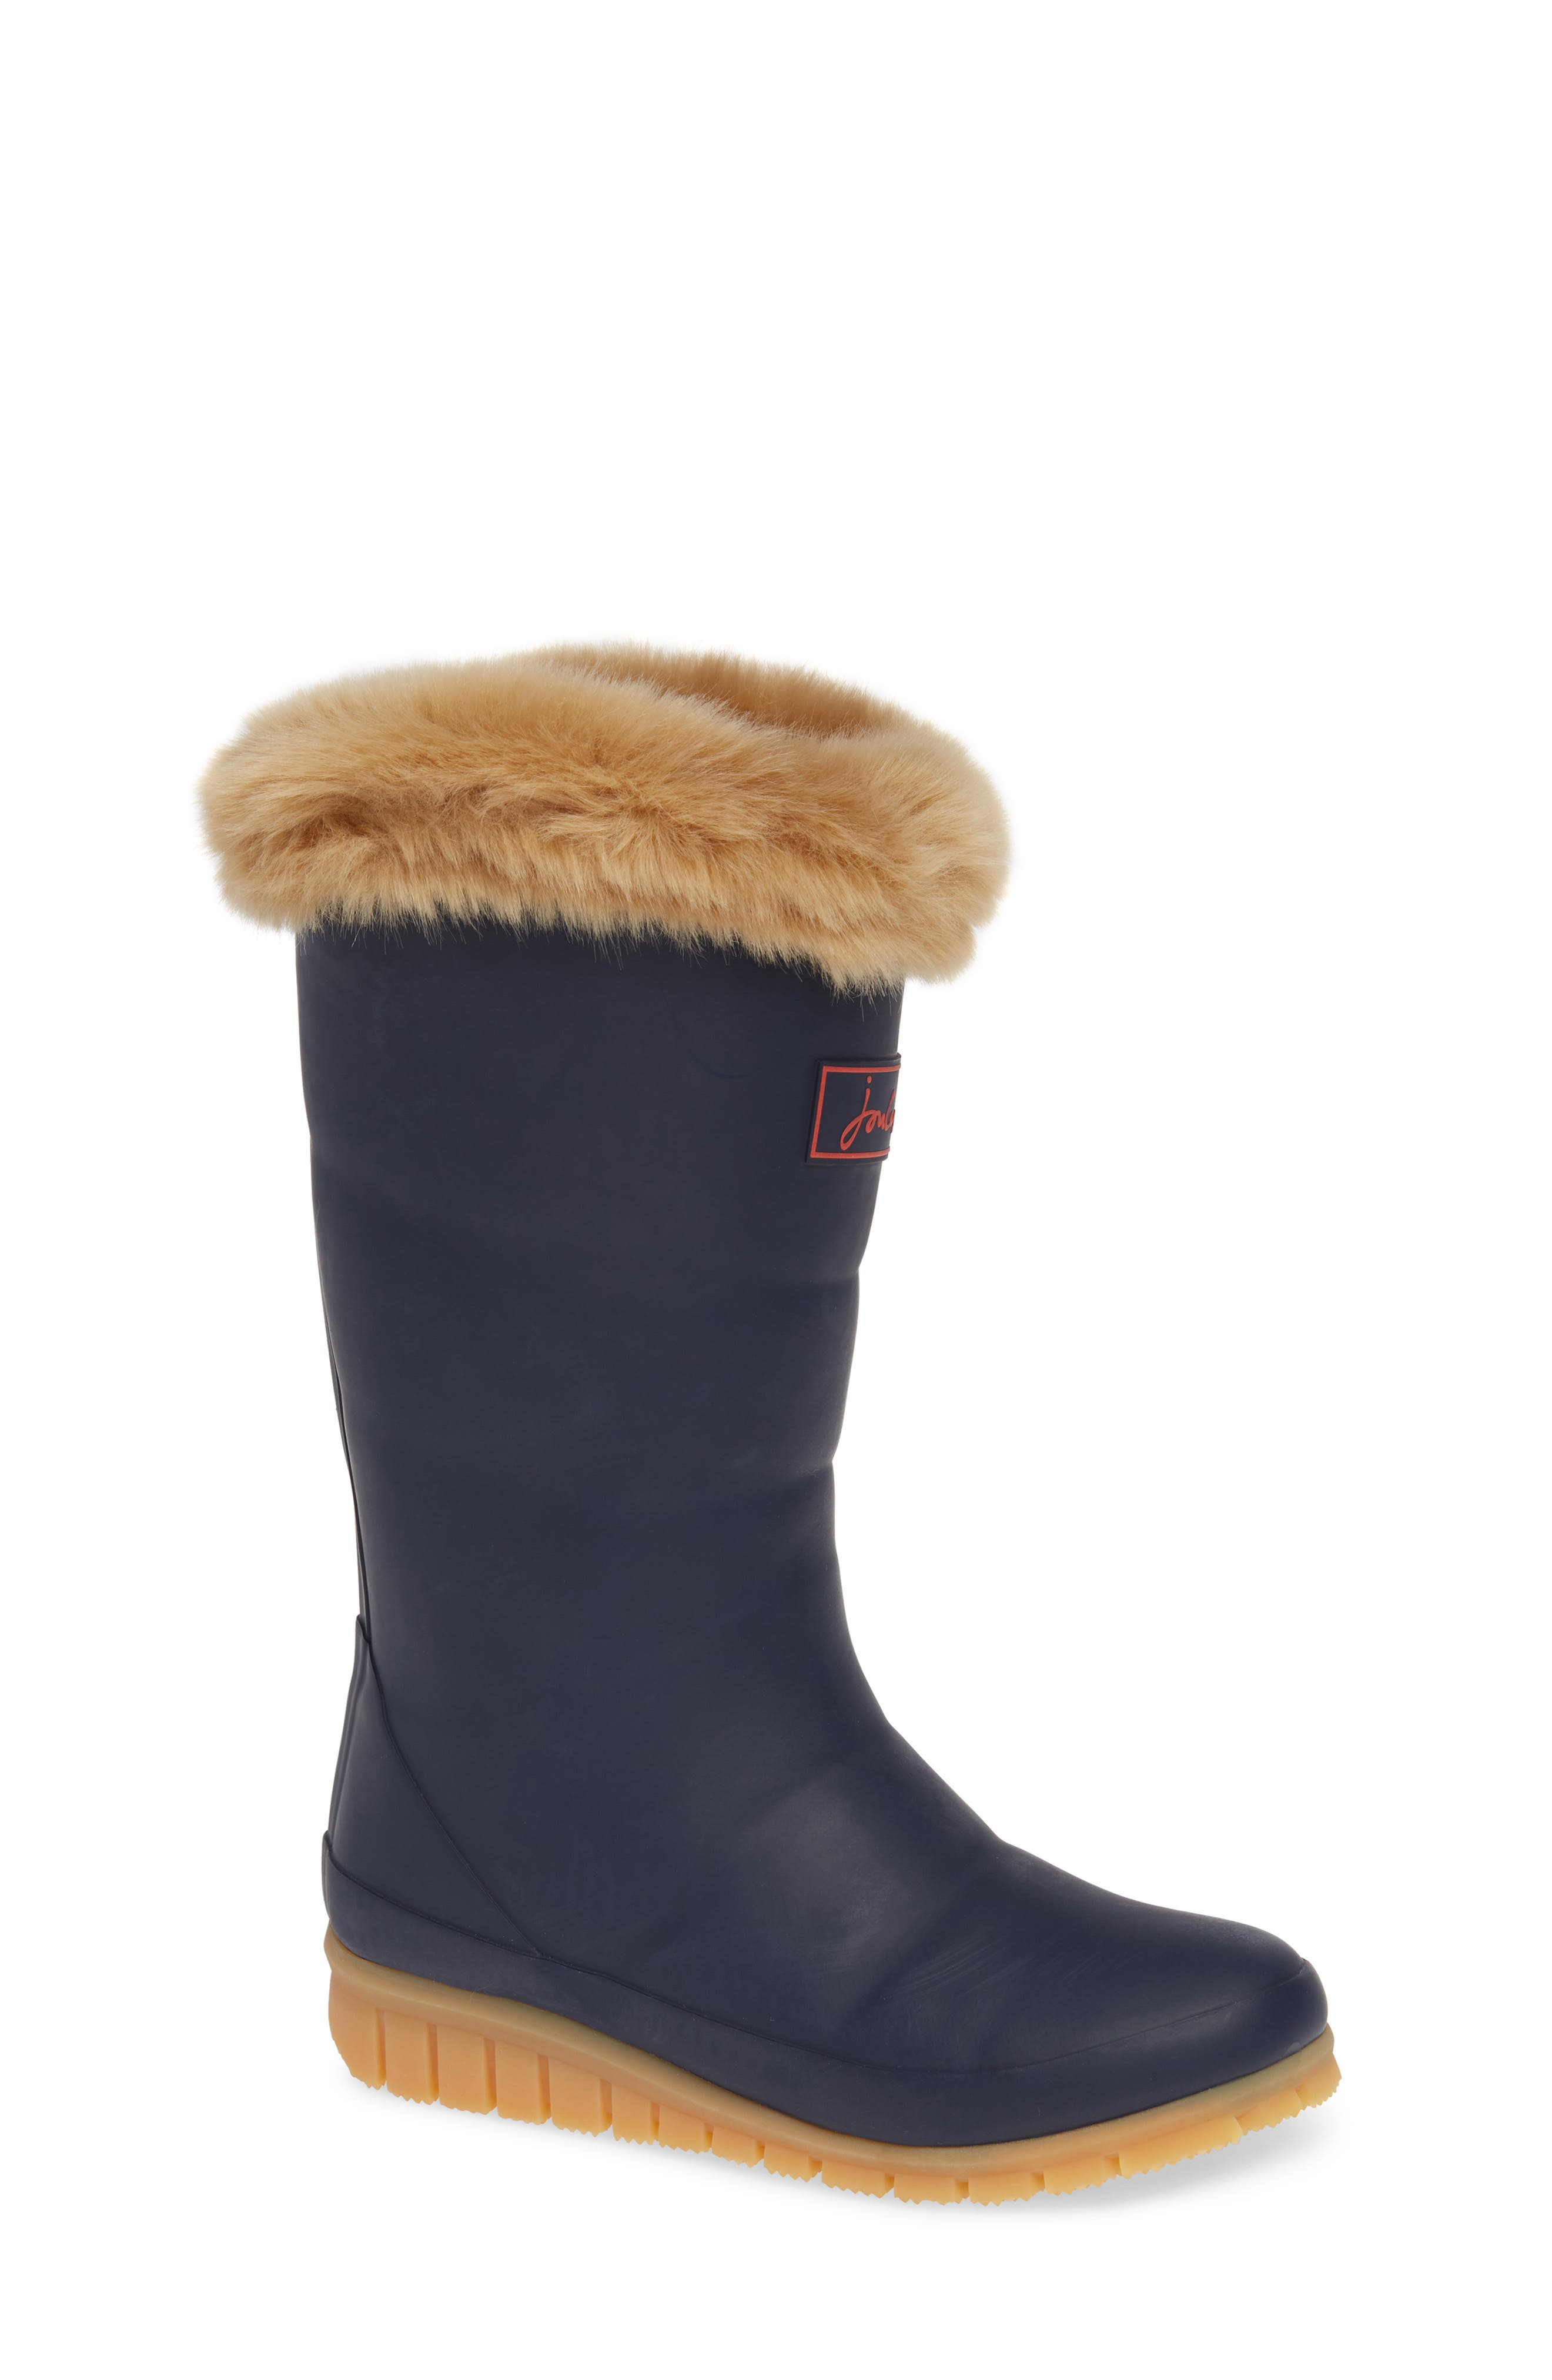 Padded Welly Waterproof Rain Boot with Faux Fur Trim, Main, color, FRENCH NAVY